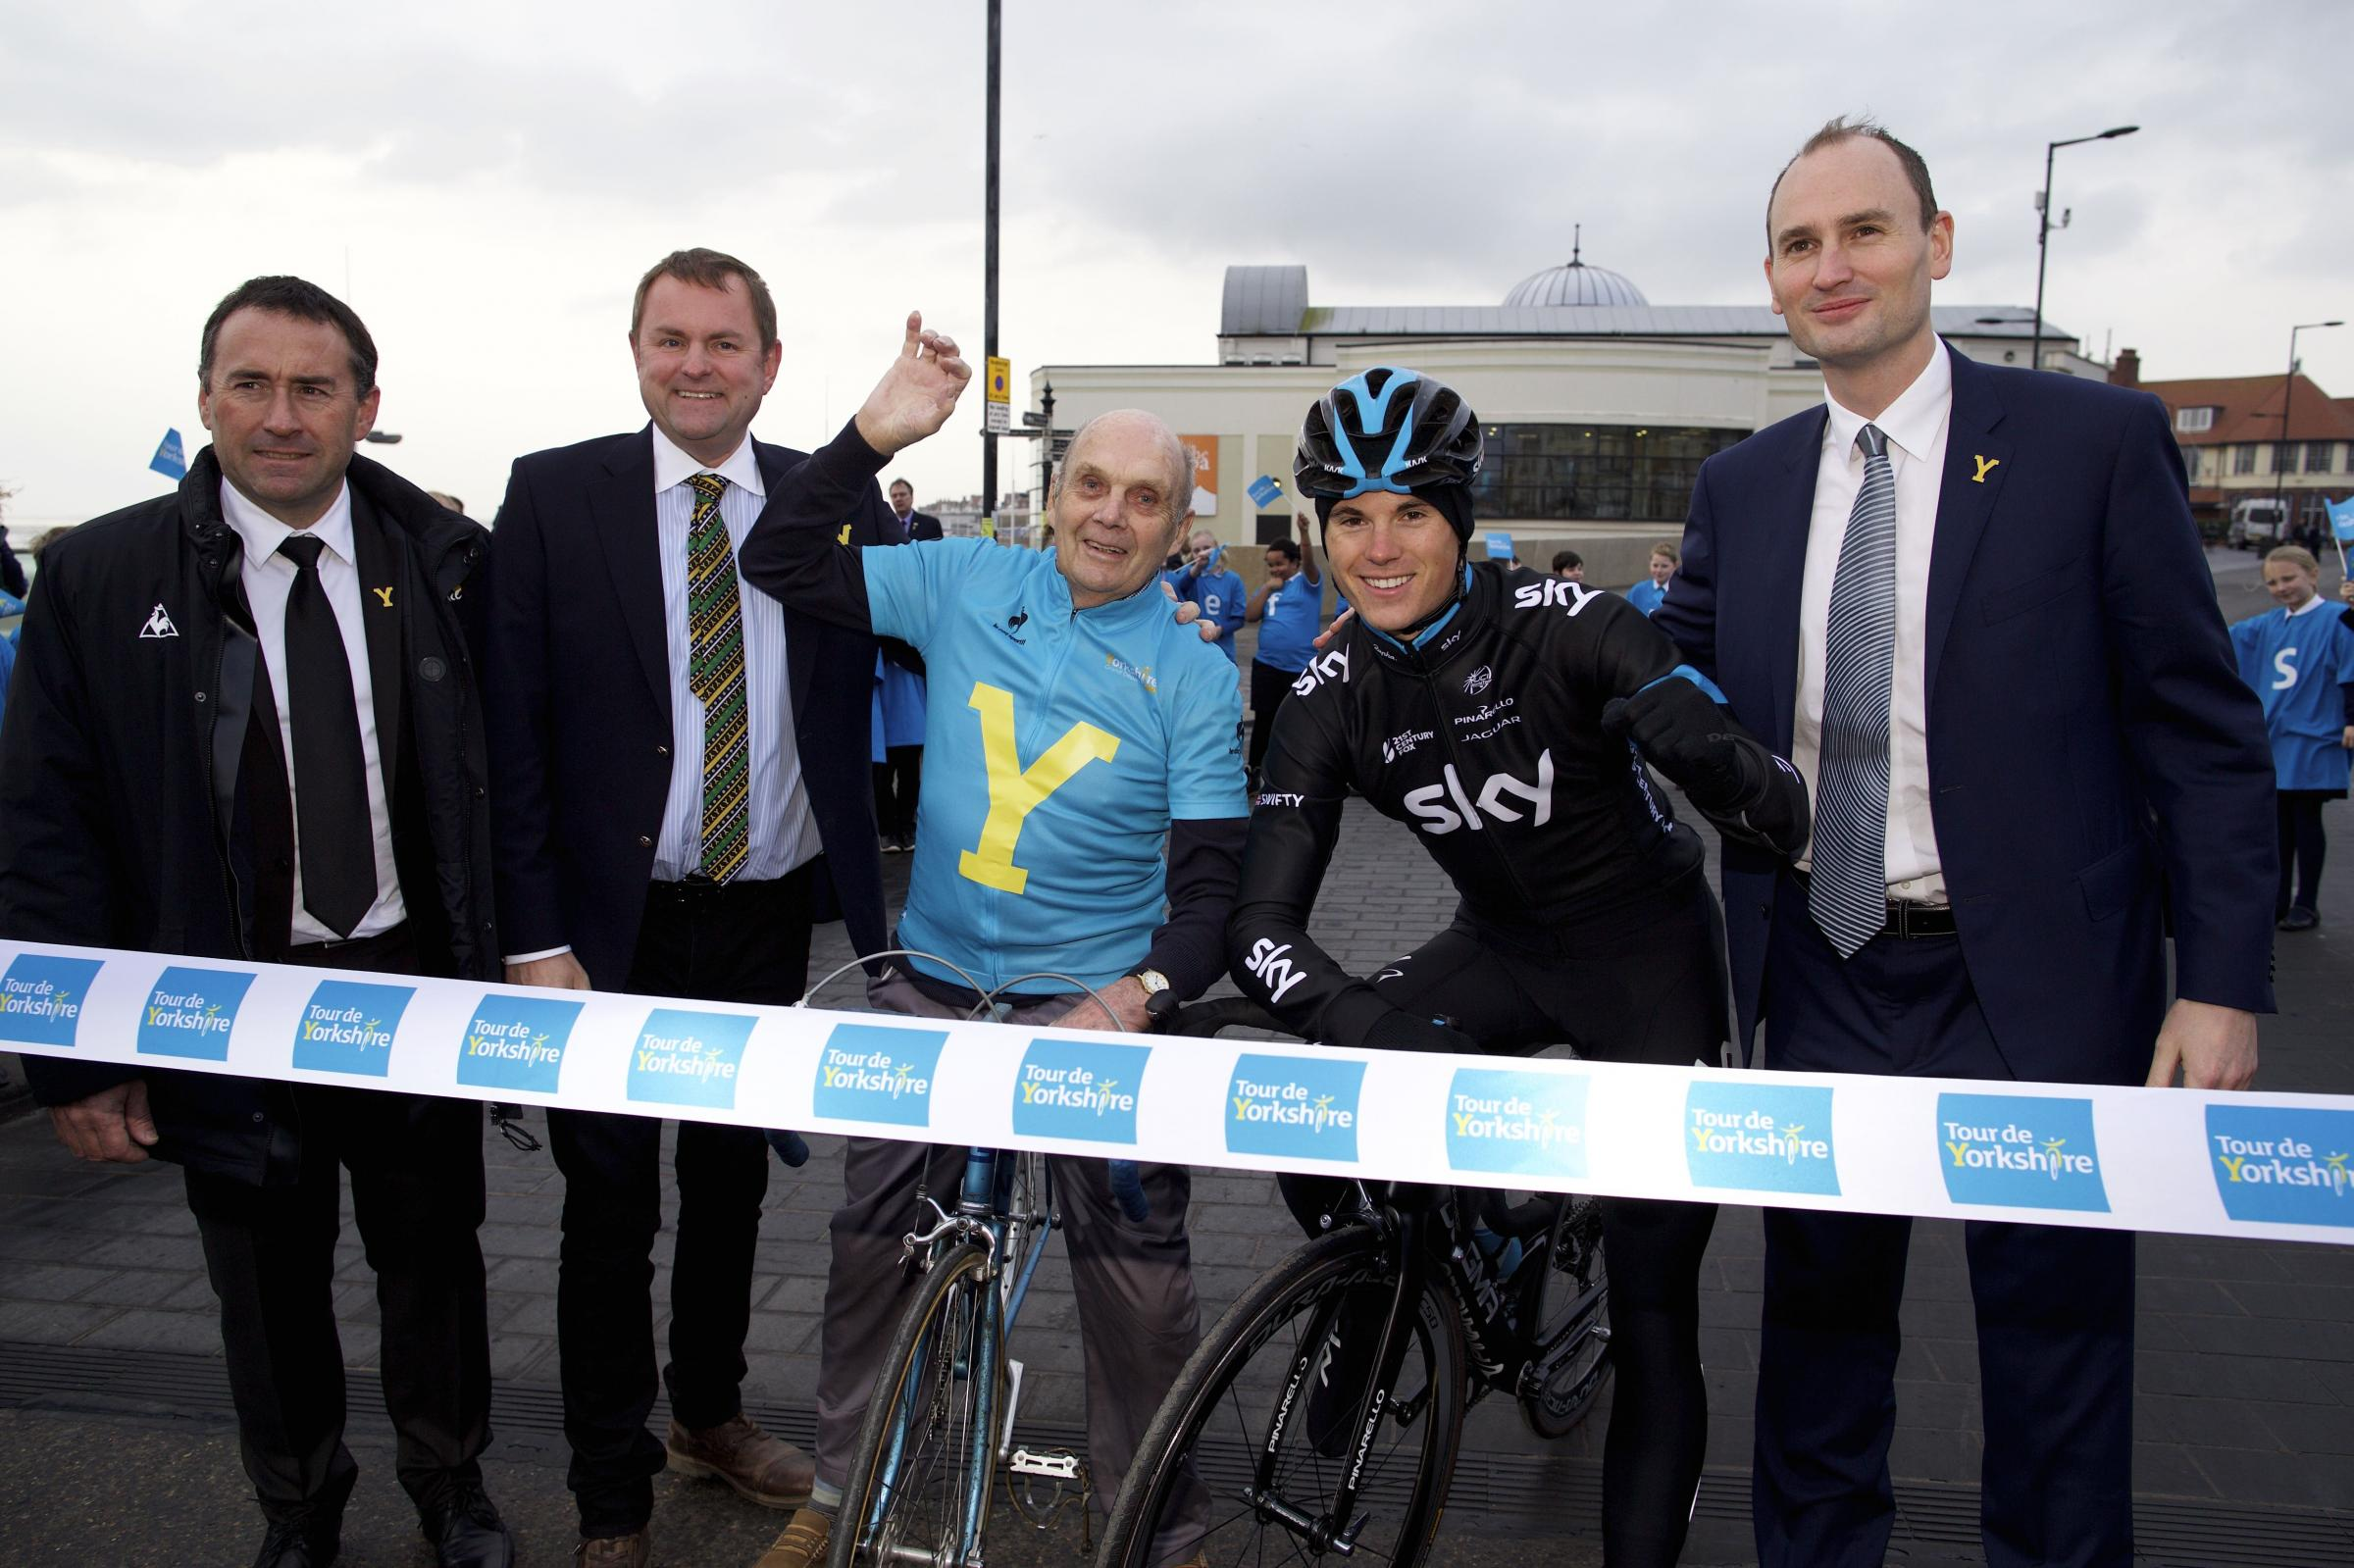 Announcing the race route, from left, Thierry Gouvenou, of the Amaury Sport Organisation, Welcome to Yorkshire chief executive Gary Verity, former racing cyclist Brian Robinson, Team Sky cyclist Ben Swift, and Jean-Etienne Amaury, of ASO